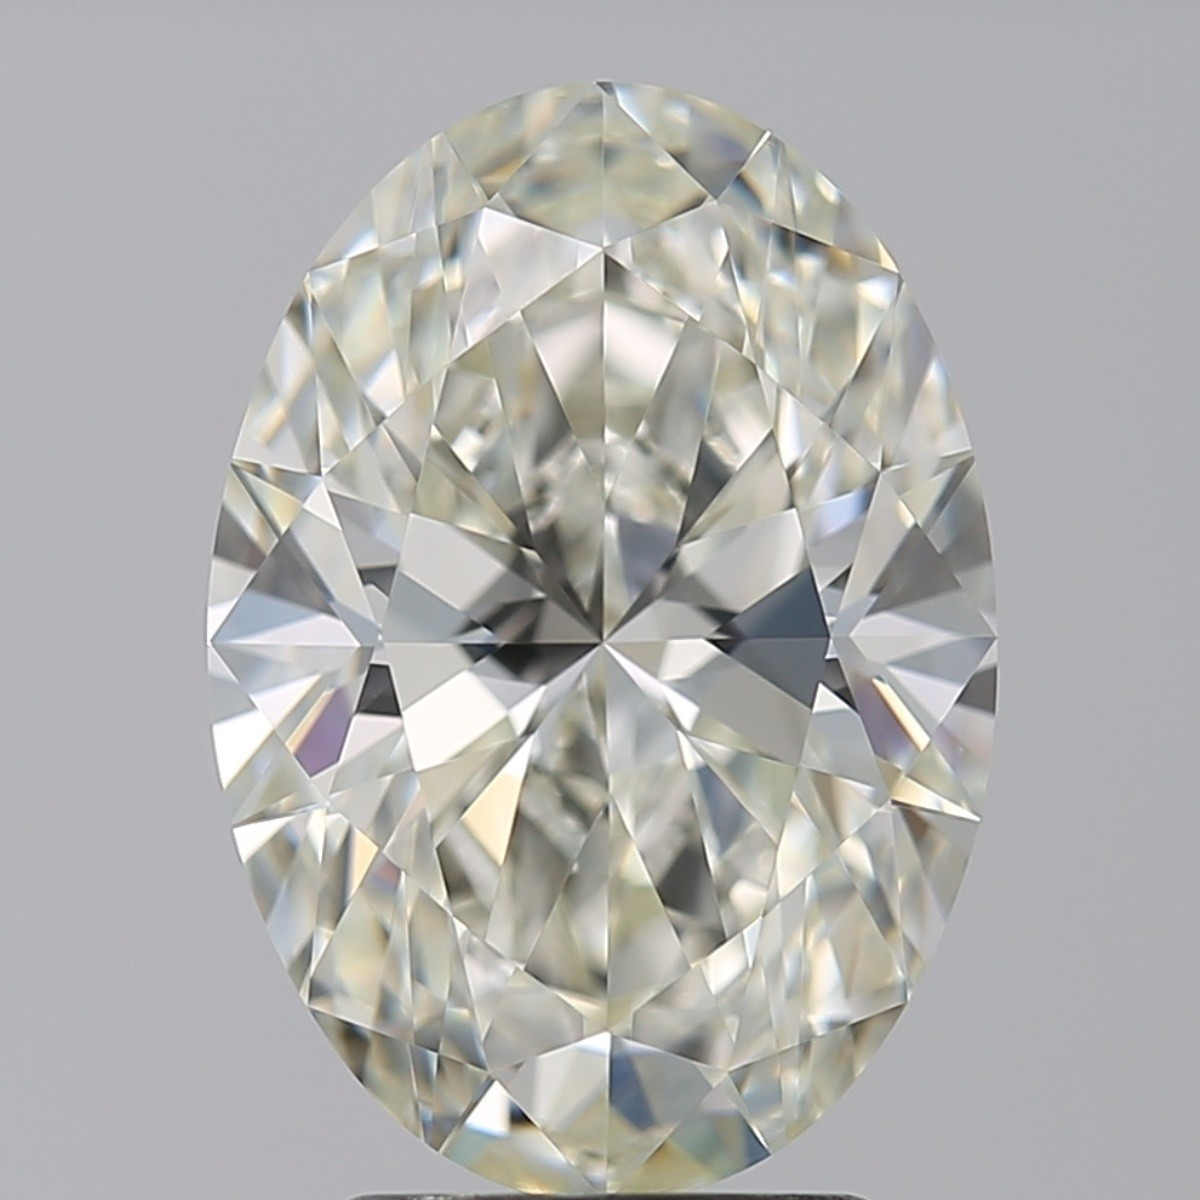 3.03 Carat Oval Diamond (J/VVS1)